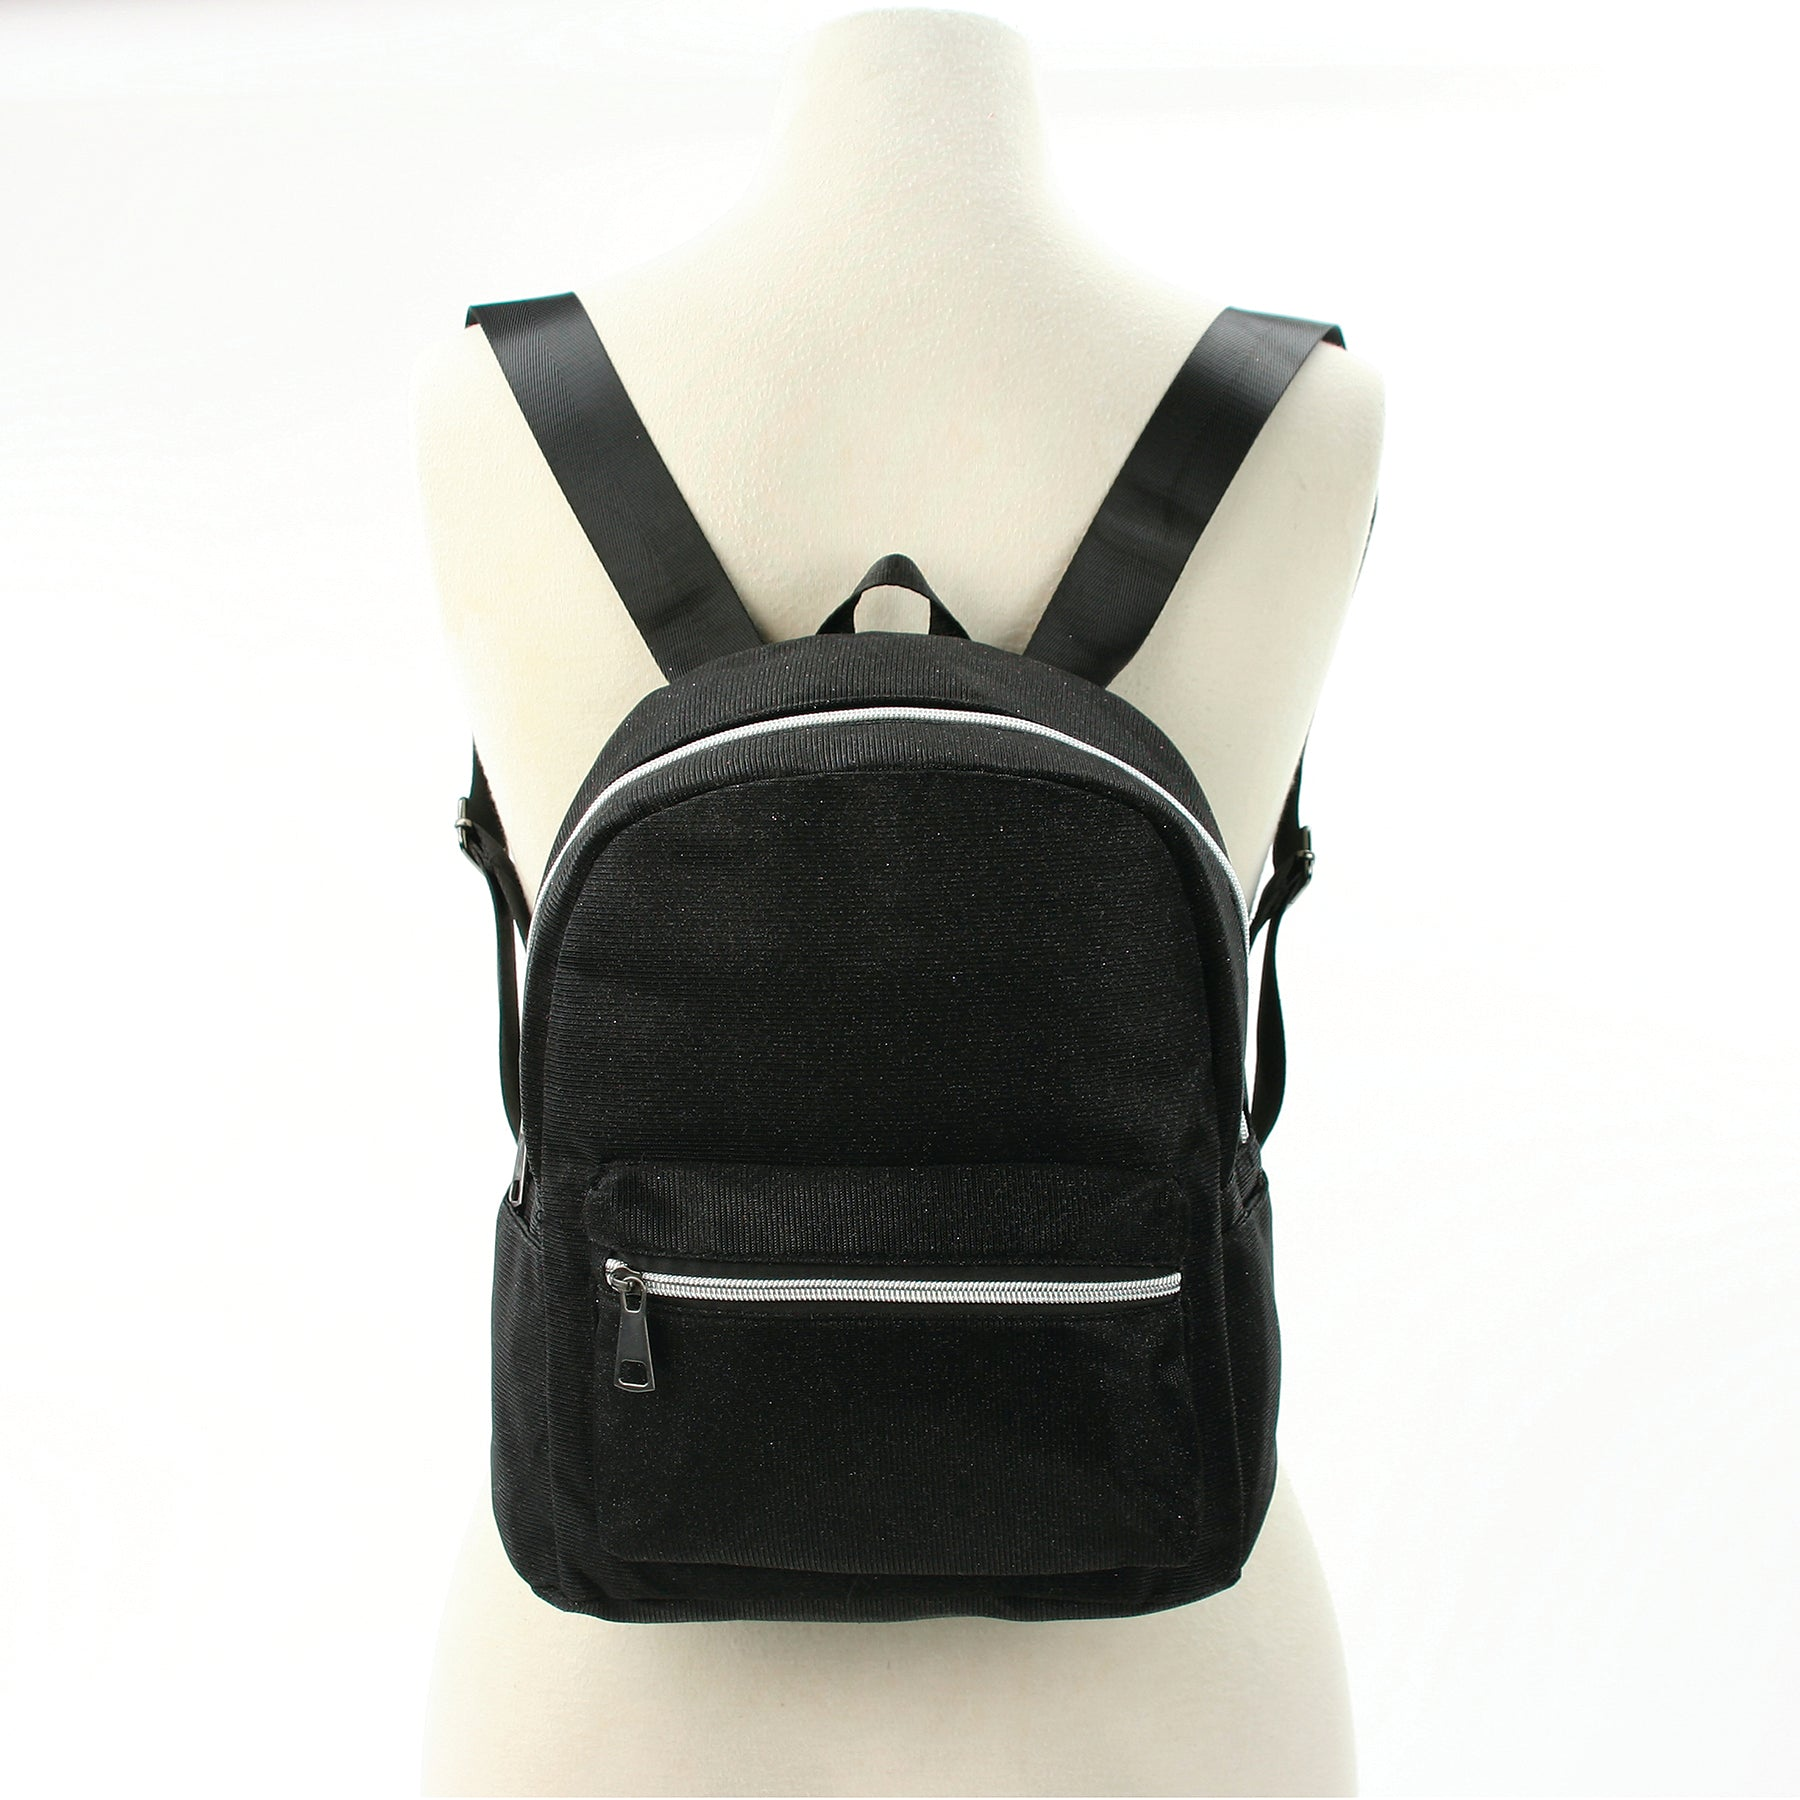 Mini Sparkly Backpack in Polyester, black color, front view